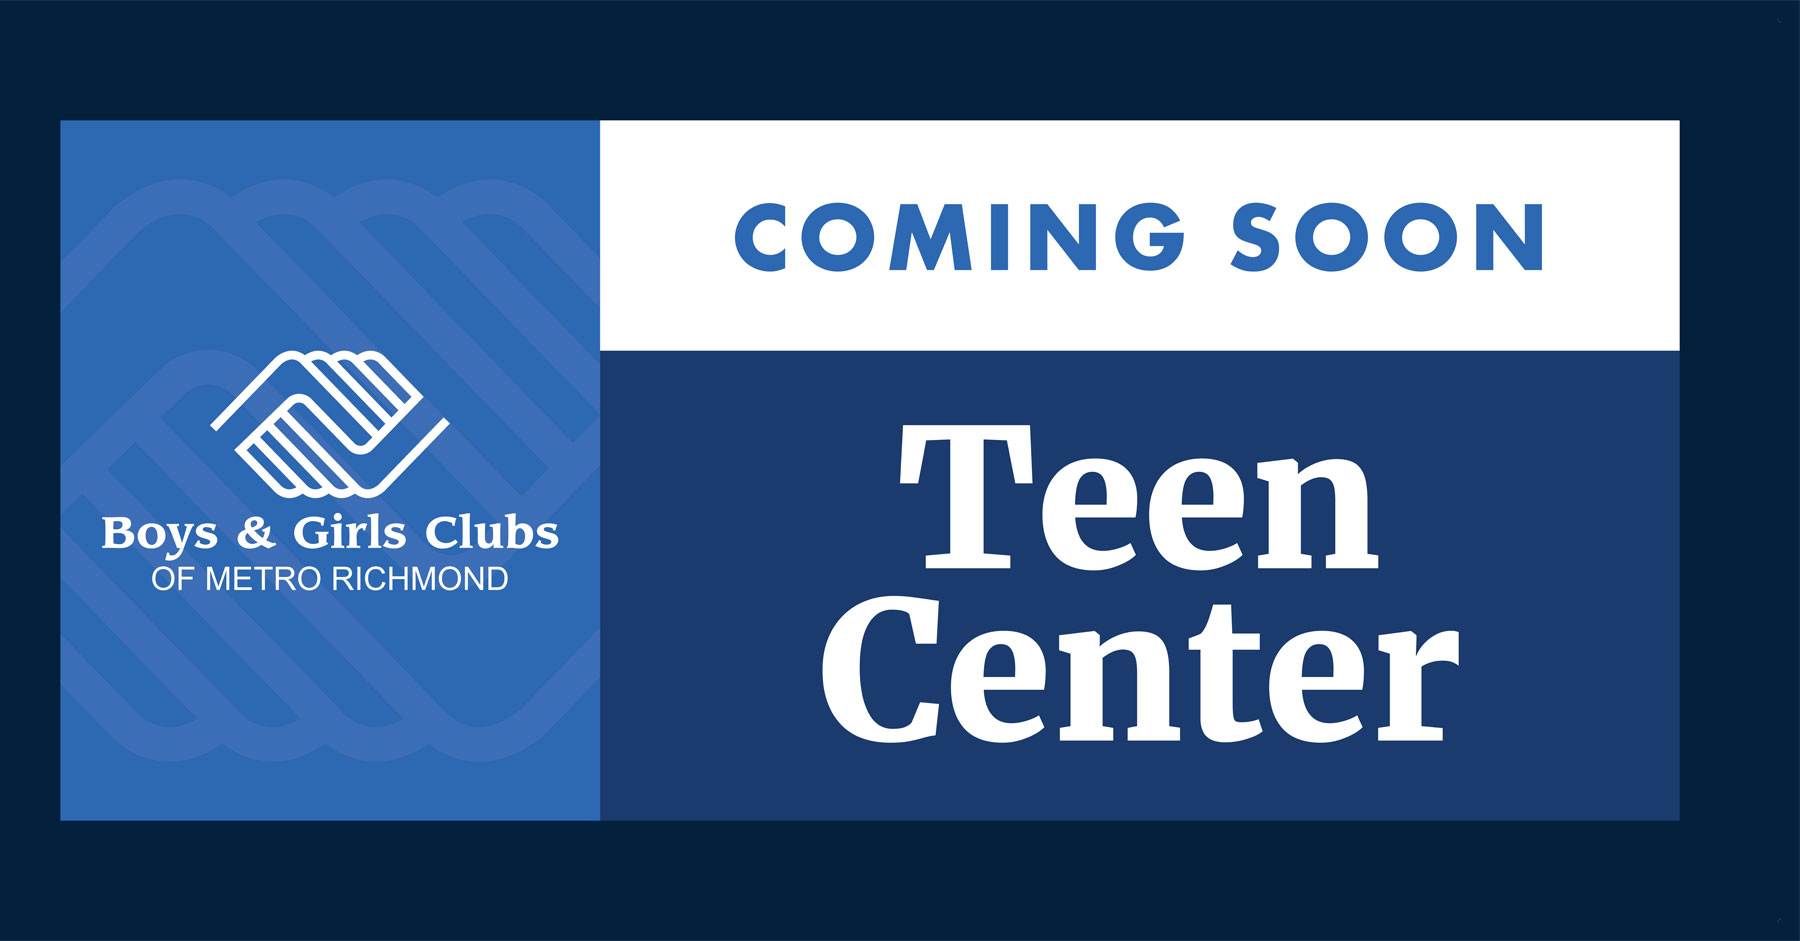 Boys and Girls Club Coming Soon Sign